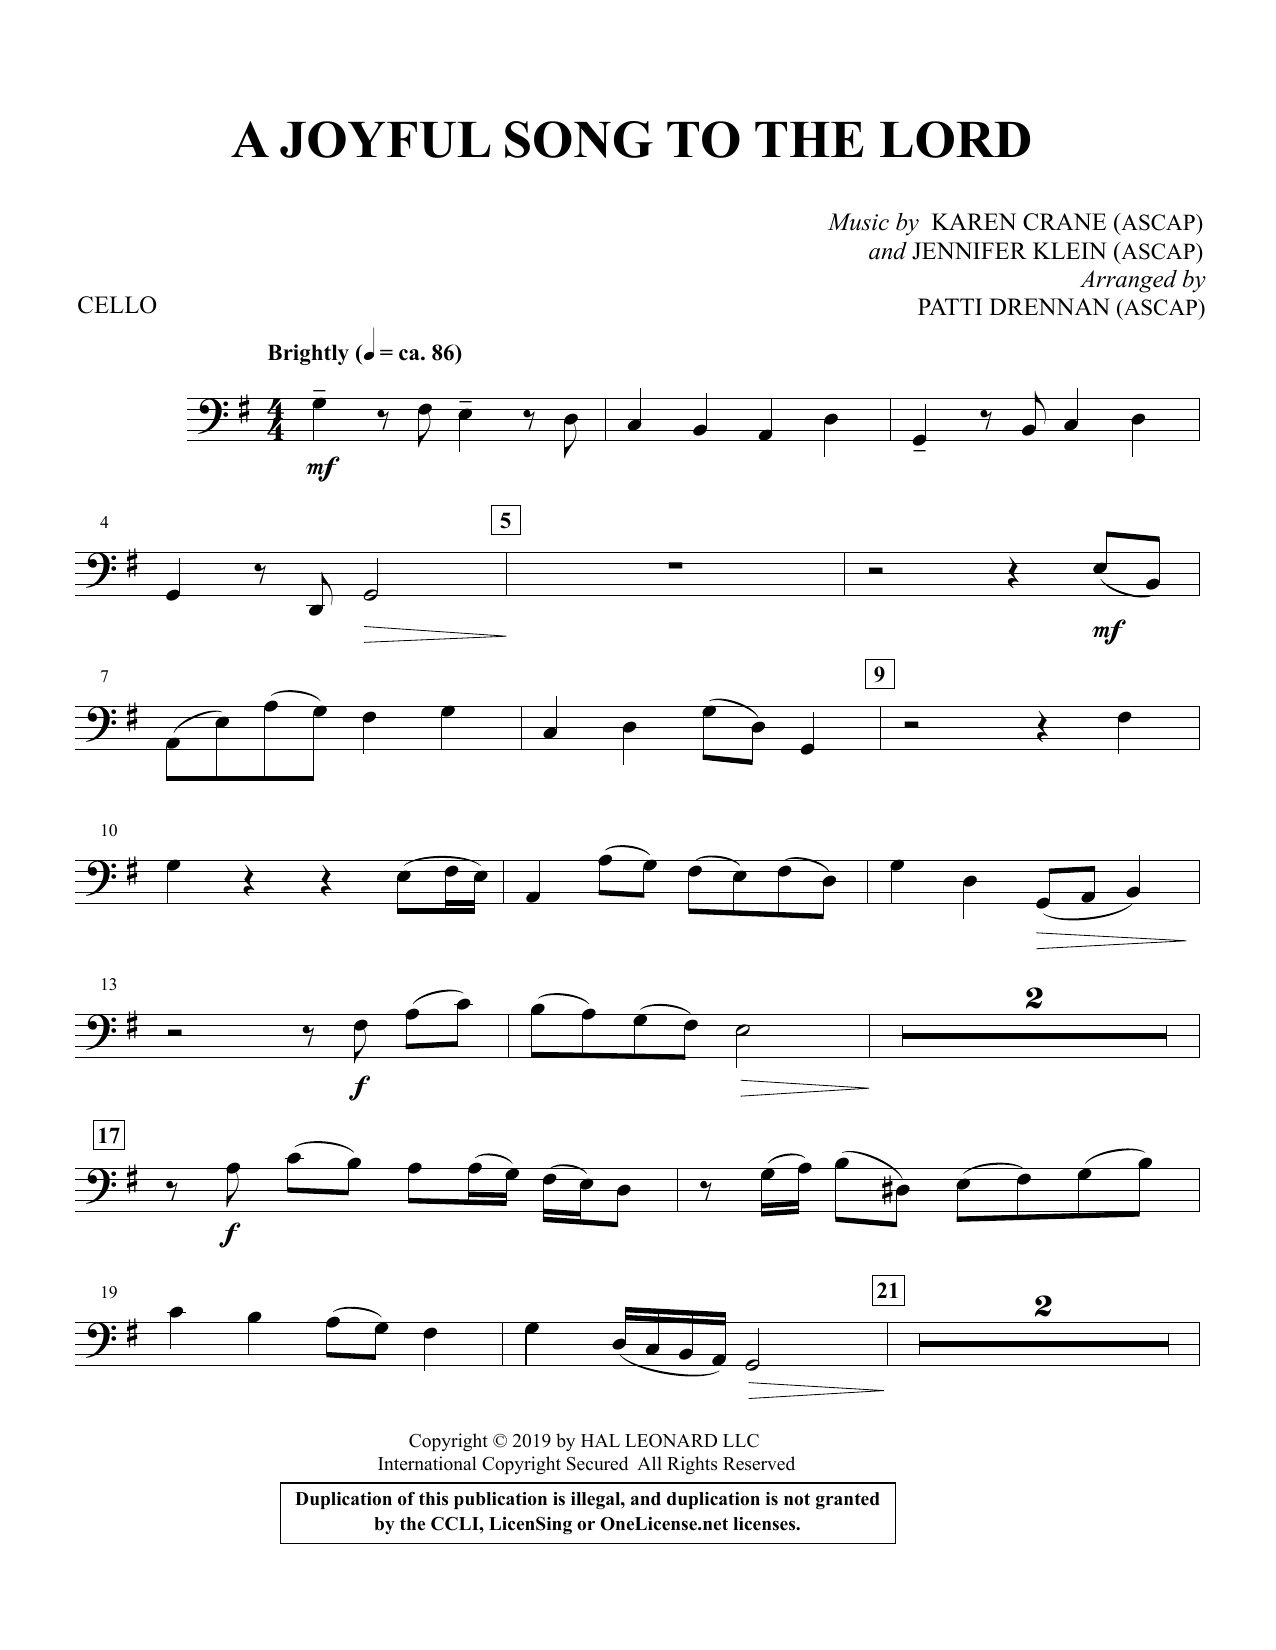 A Joyful Song to the Lord (arr. Patti Drennan) - Cello Partition Digitale